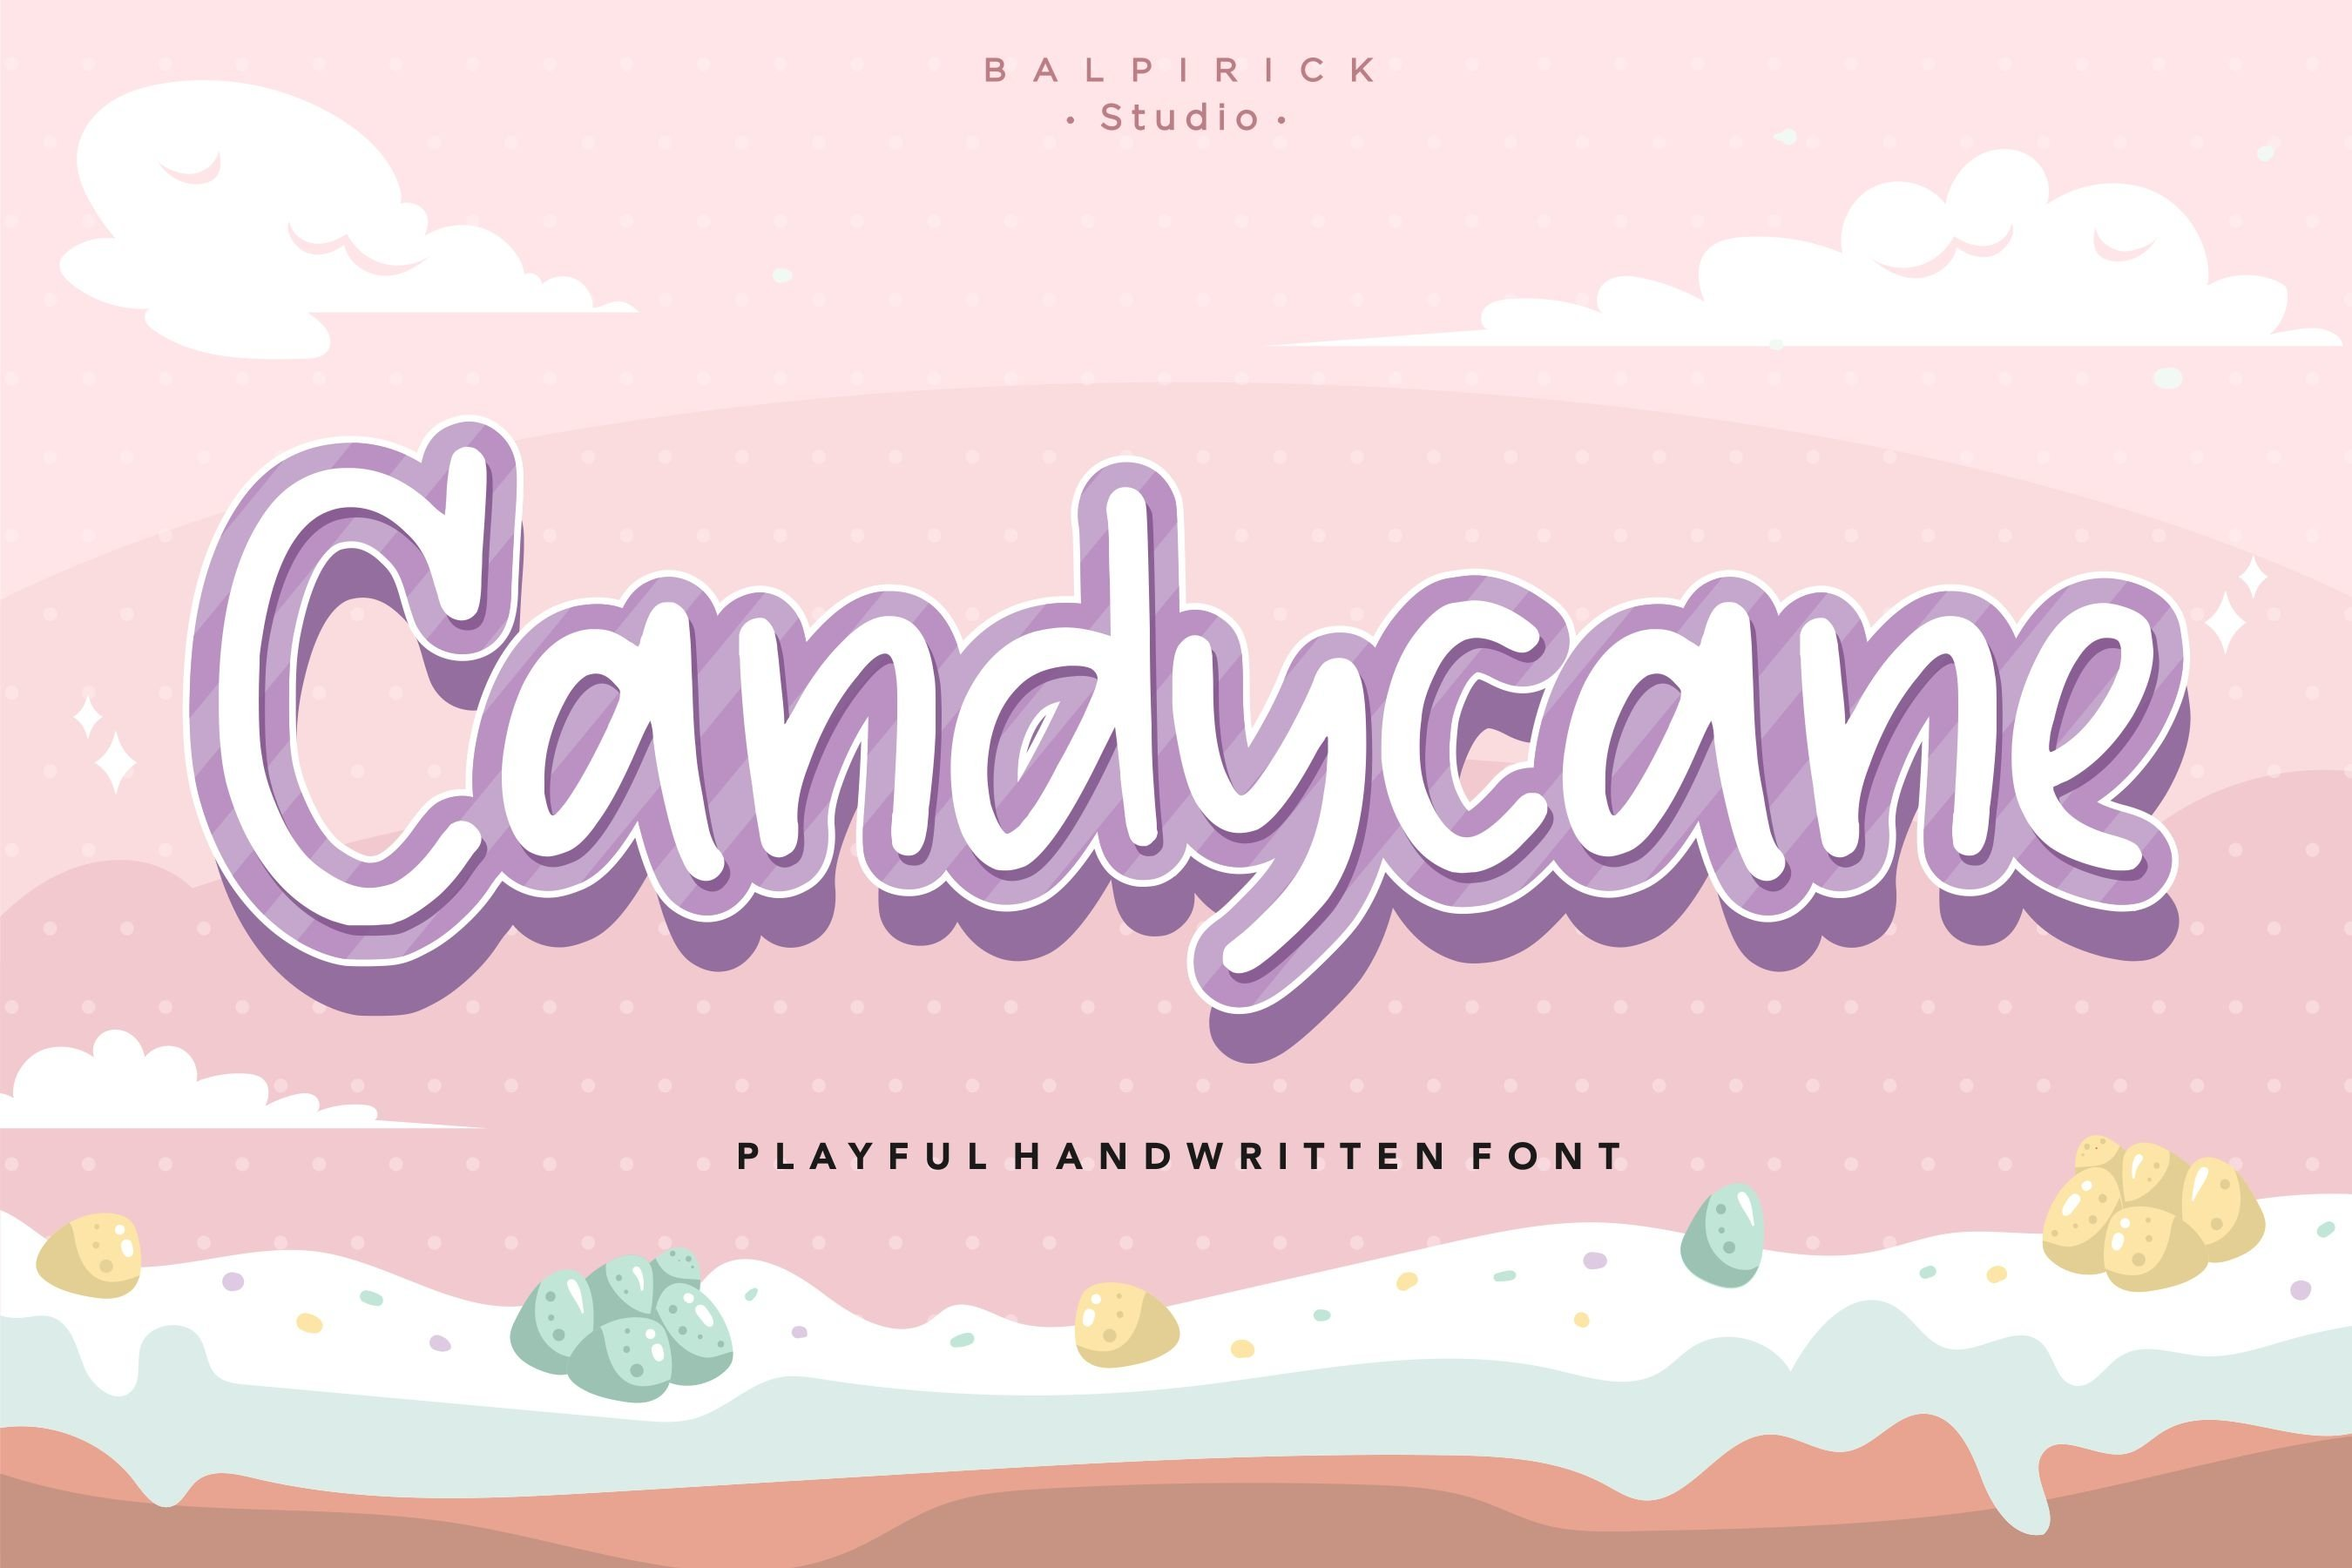 Candycane Playful Handwritten Font example image 1